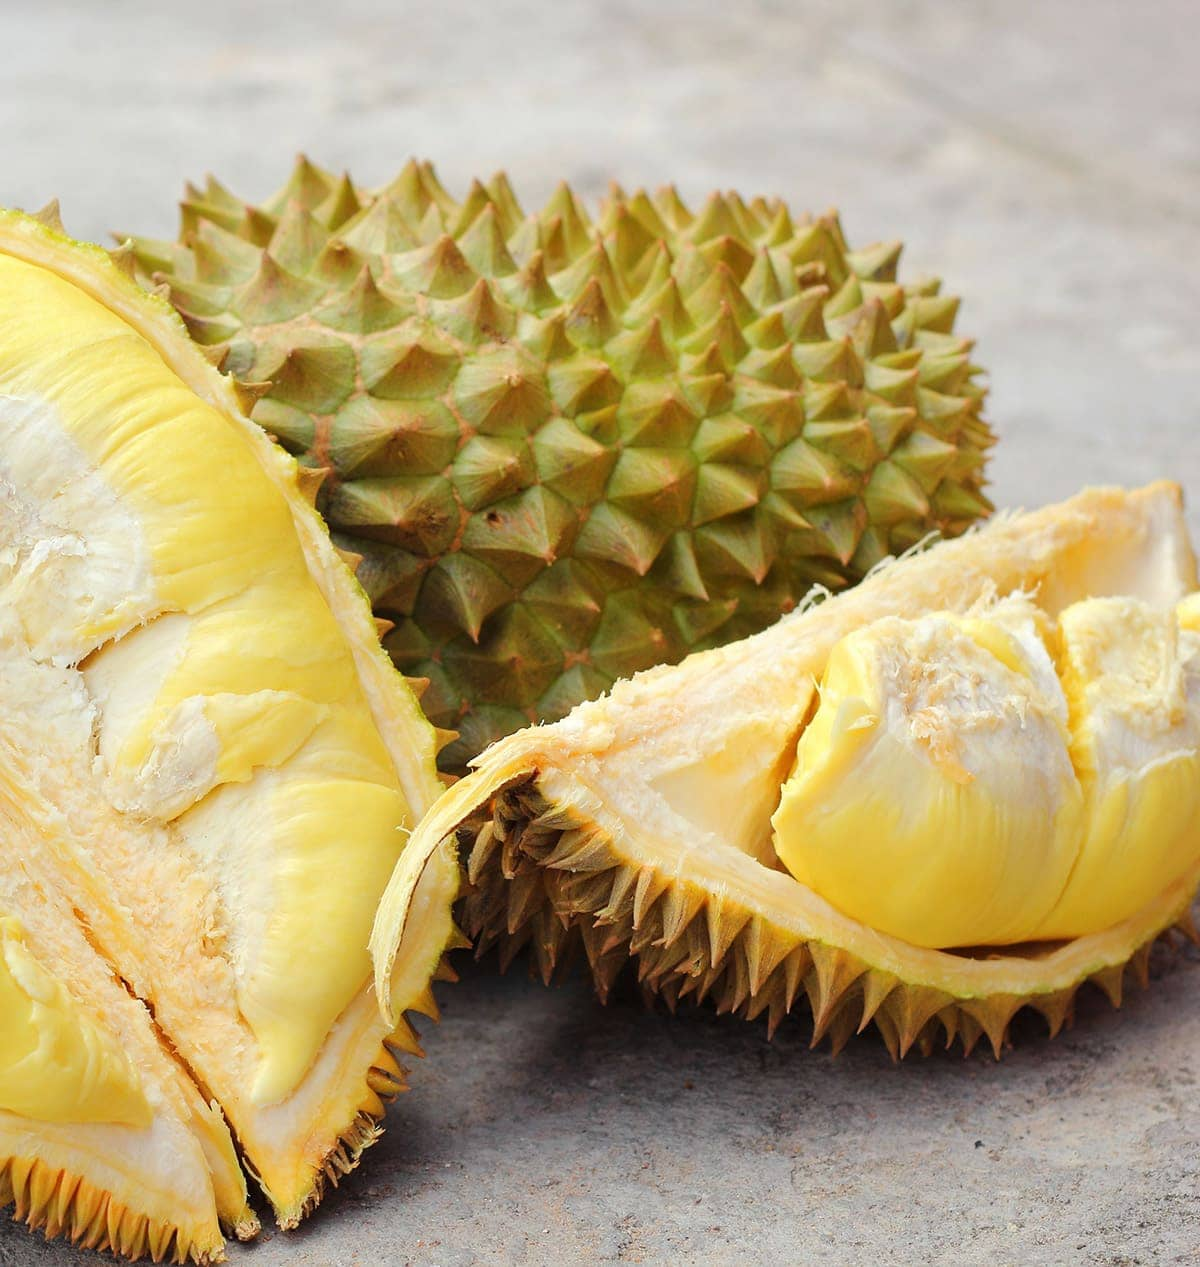 durian fruits on white backgound